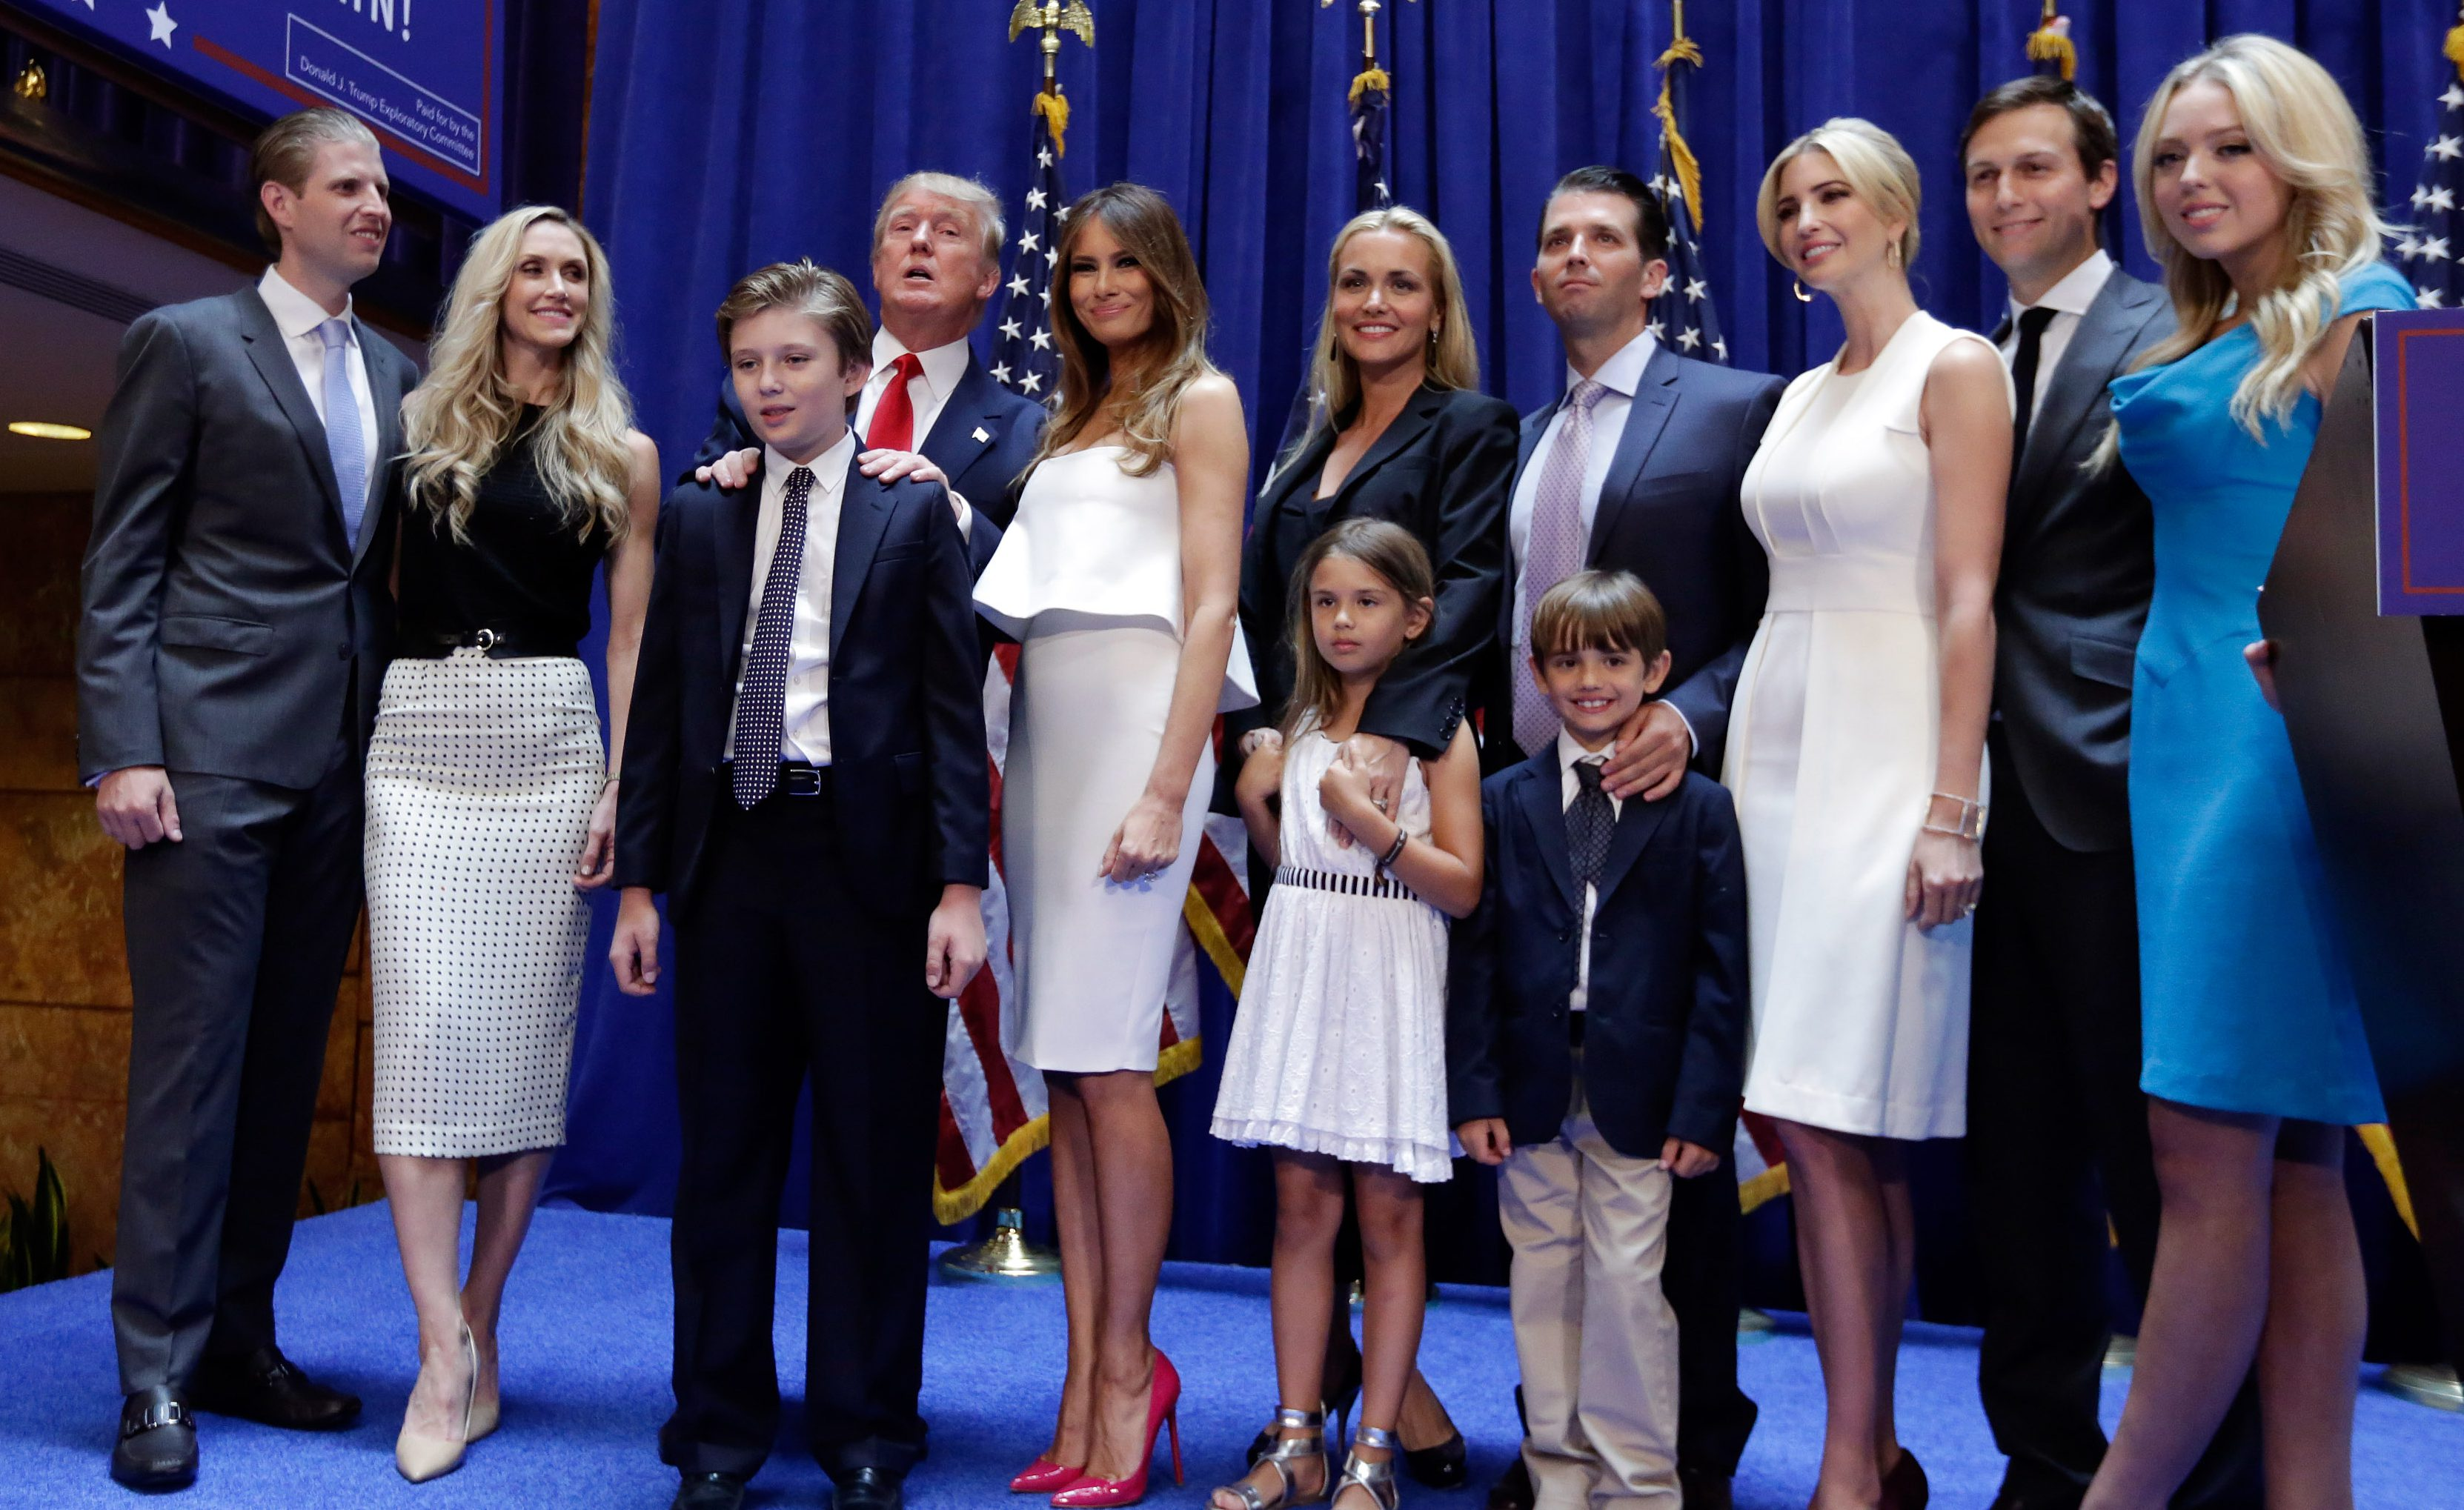 In this June 16, 2015 file photo, Donald Trump, fourth left, poses with his family after his announcement that he will run for president of the United States, in the lobby of Trump Tower, New York,  Tuesday, June 16, 2015. From lef are: son Eric Trump, with his wife Lara Yunaska; Donald Trump's son Barron Trump, wife Melania Trump; Vanessa Haydon and her husband Donald Trump Jr.; daughter Ivanka Trump with her husband Jared Kushner; daughter Tiffany Trump. In the front row are Kai Trump and Donald Trump III, children of Donald Trump Jr.